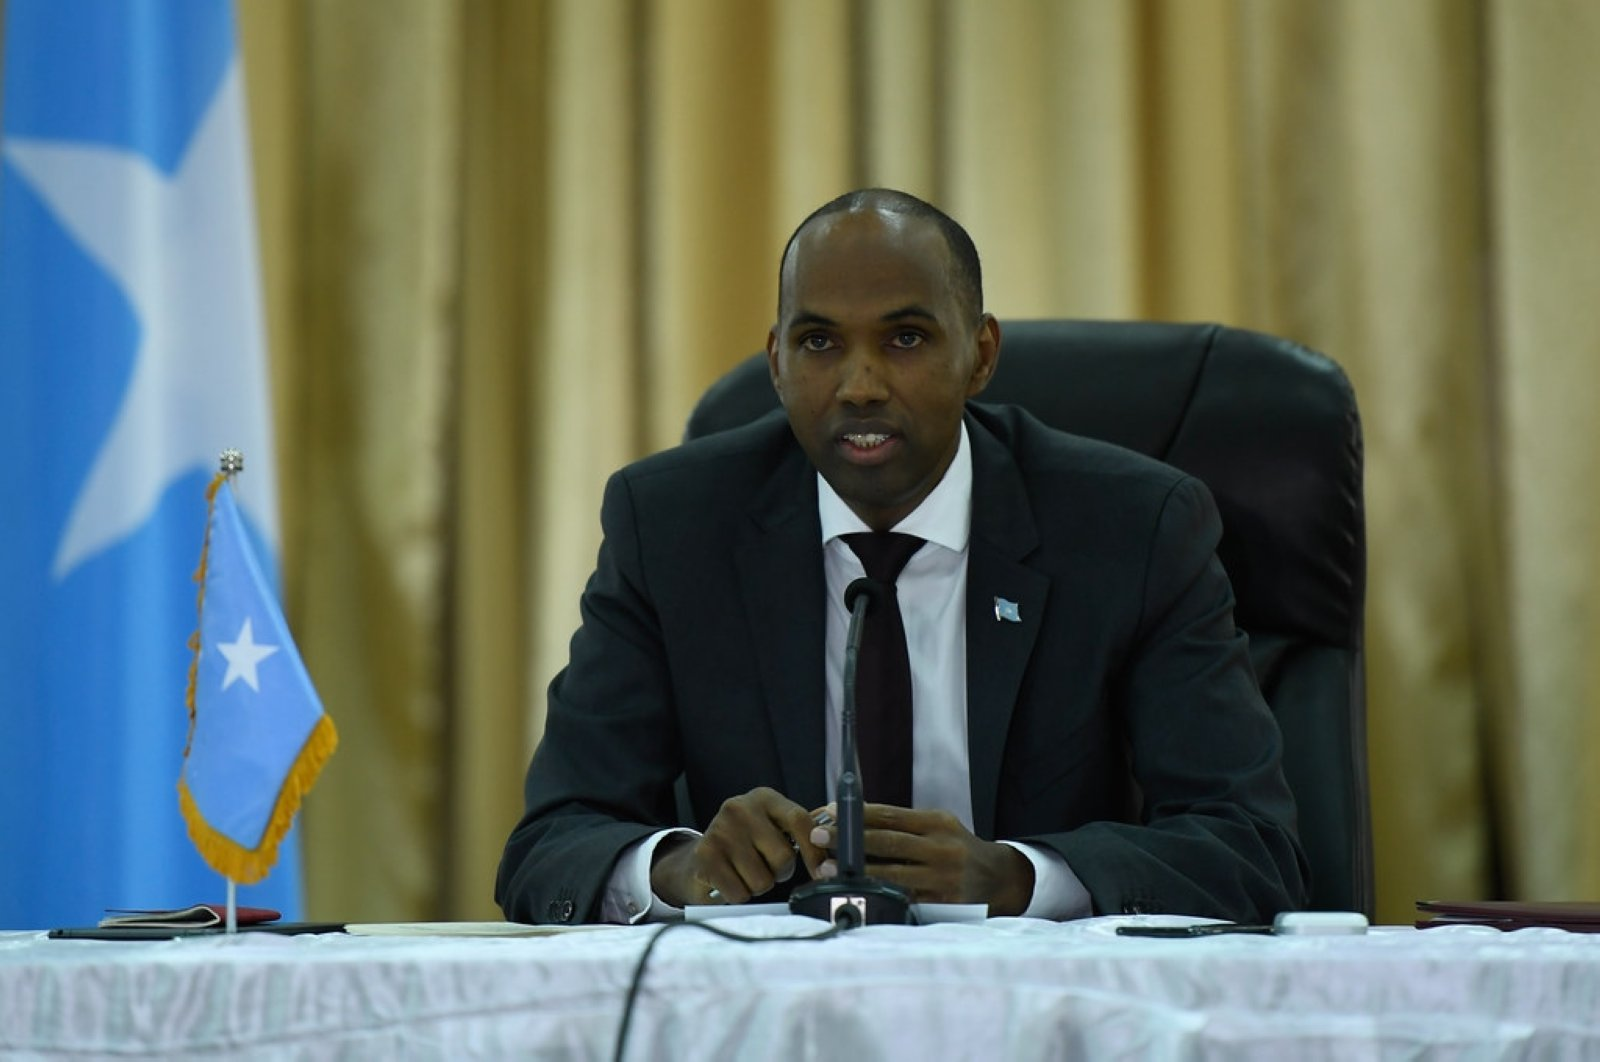 Somalian PM Hassan Ali Khaire chairs the security conference on review of joint operations by Somali National Army (SNA) and AMISOM in Mogadishu, Somalia on May 18, 2019. (AMISOM Photo)